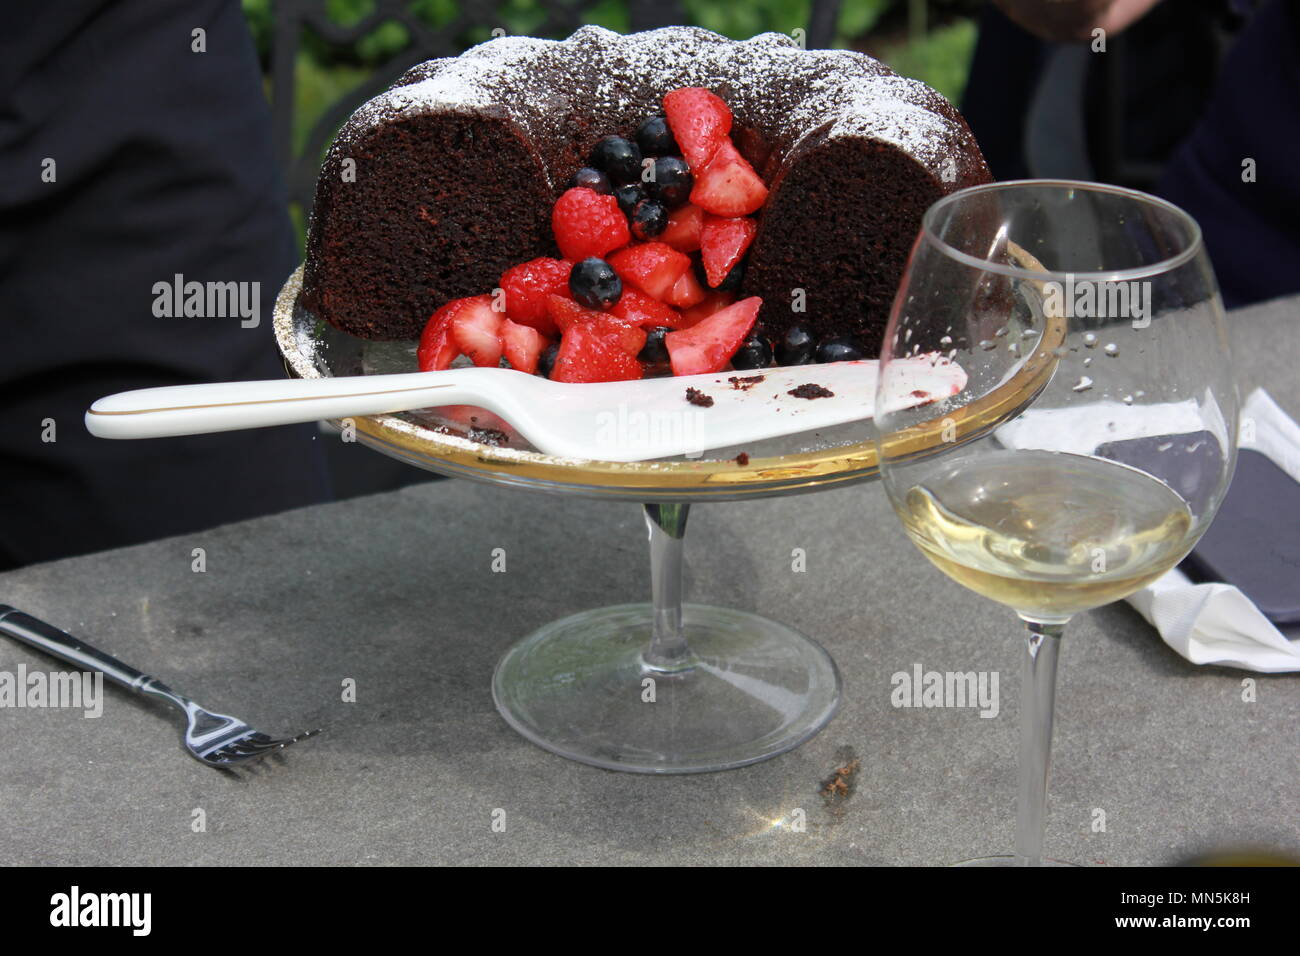 Chocolate bundt cake with strawberries served as a dessert. - Stock Image